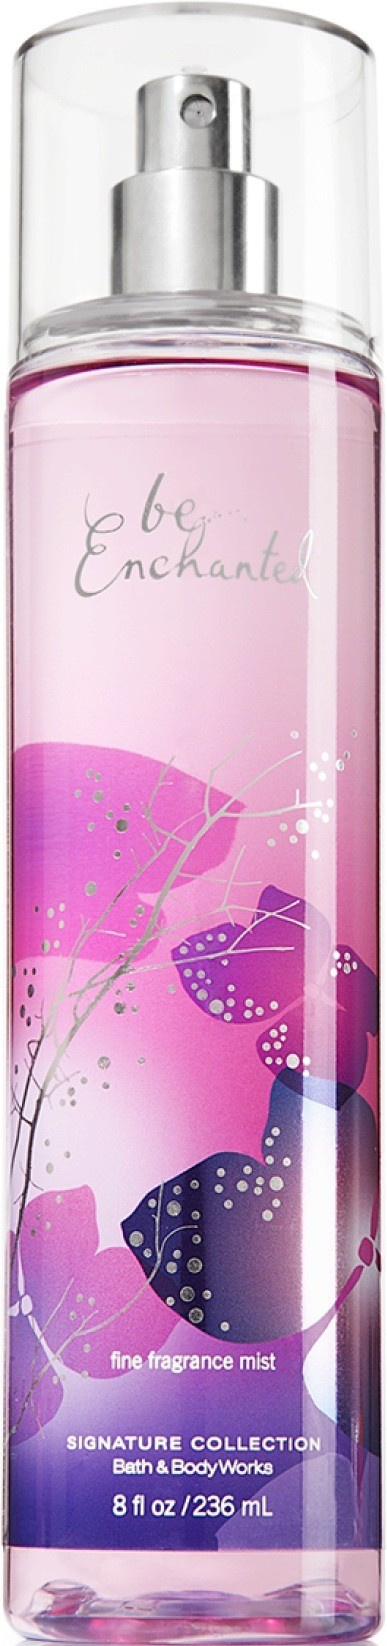 Be Enchanted Fine Fragrance Body Mist  -  For Men & Women(236 ml)